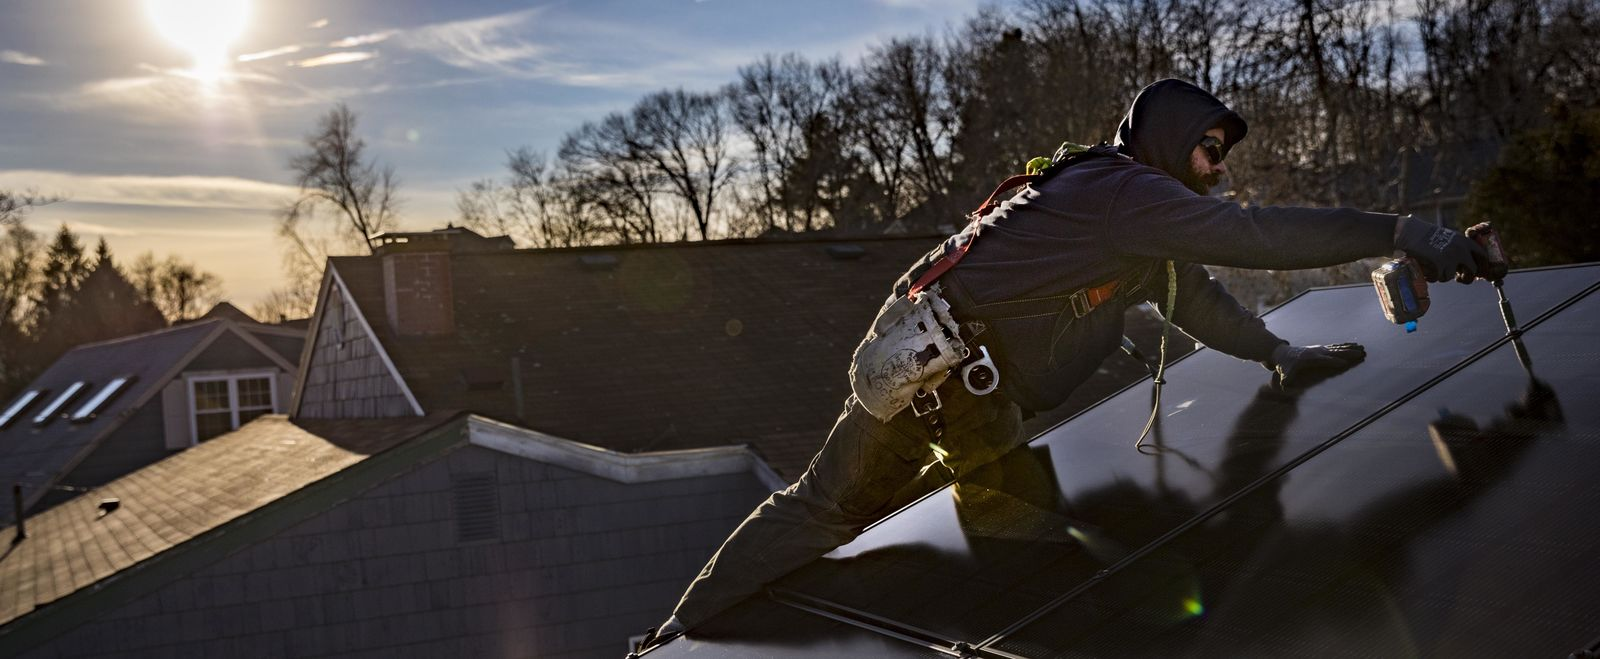 A man installs solar panels on a roof in Lowell.